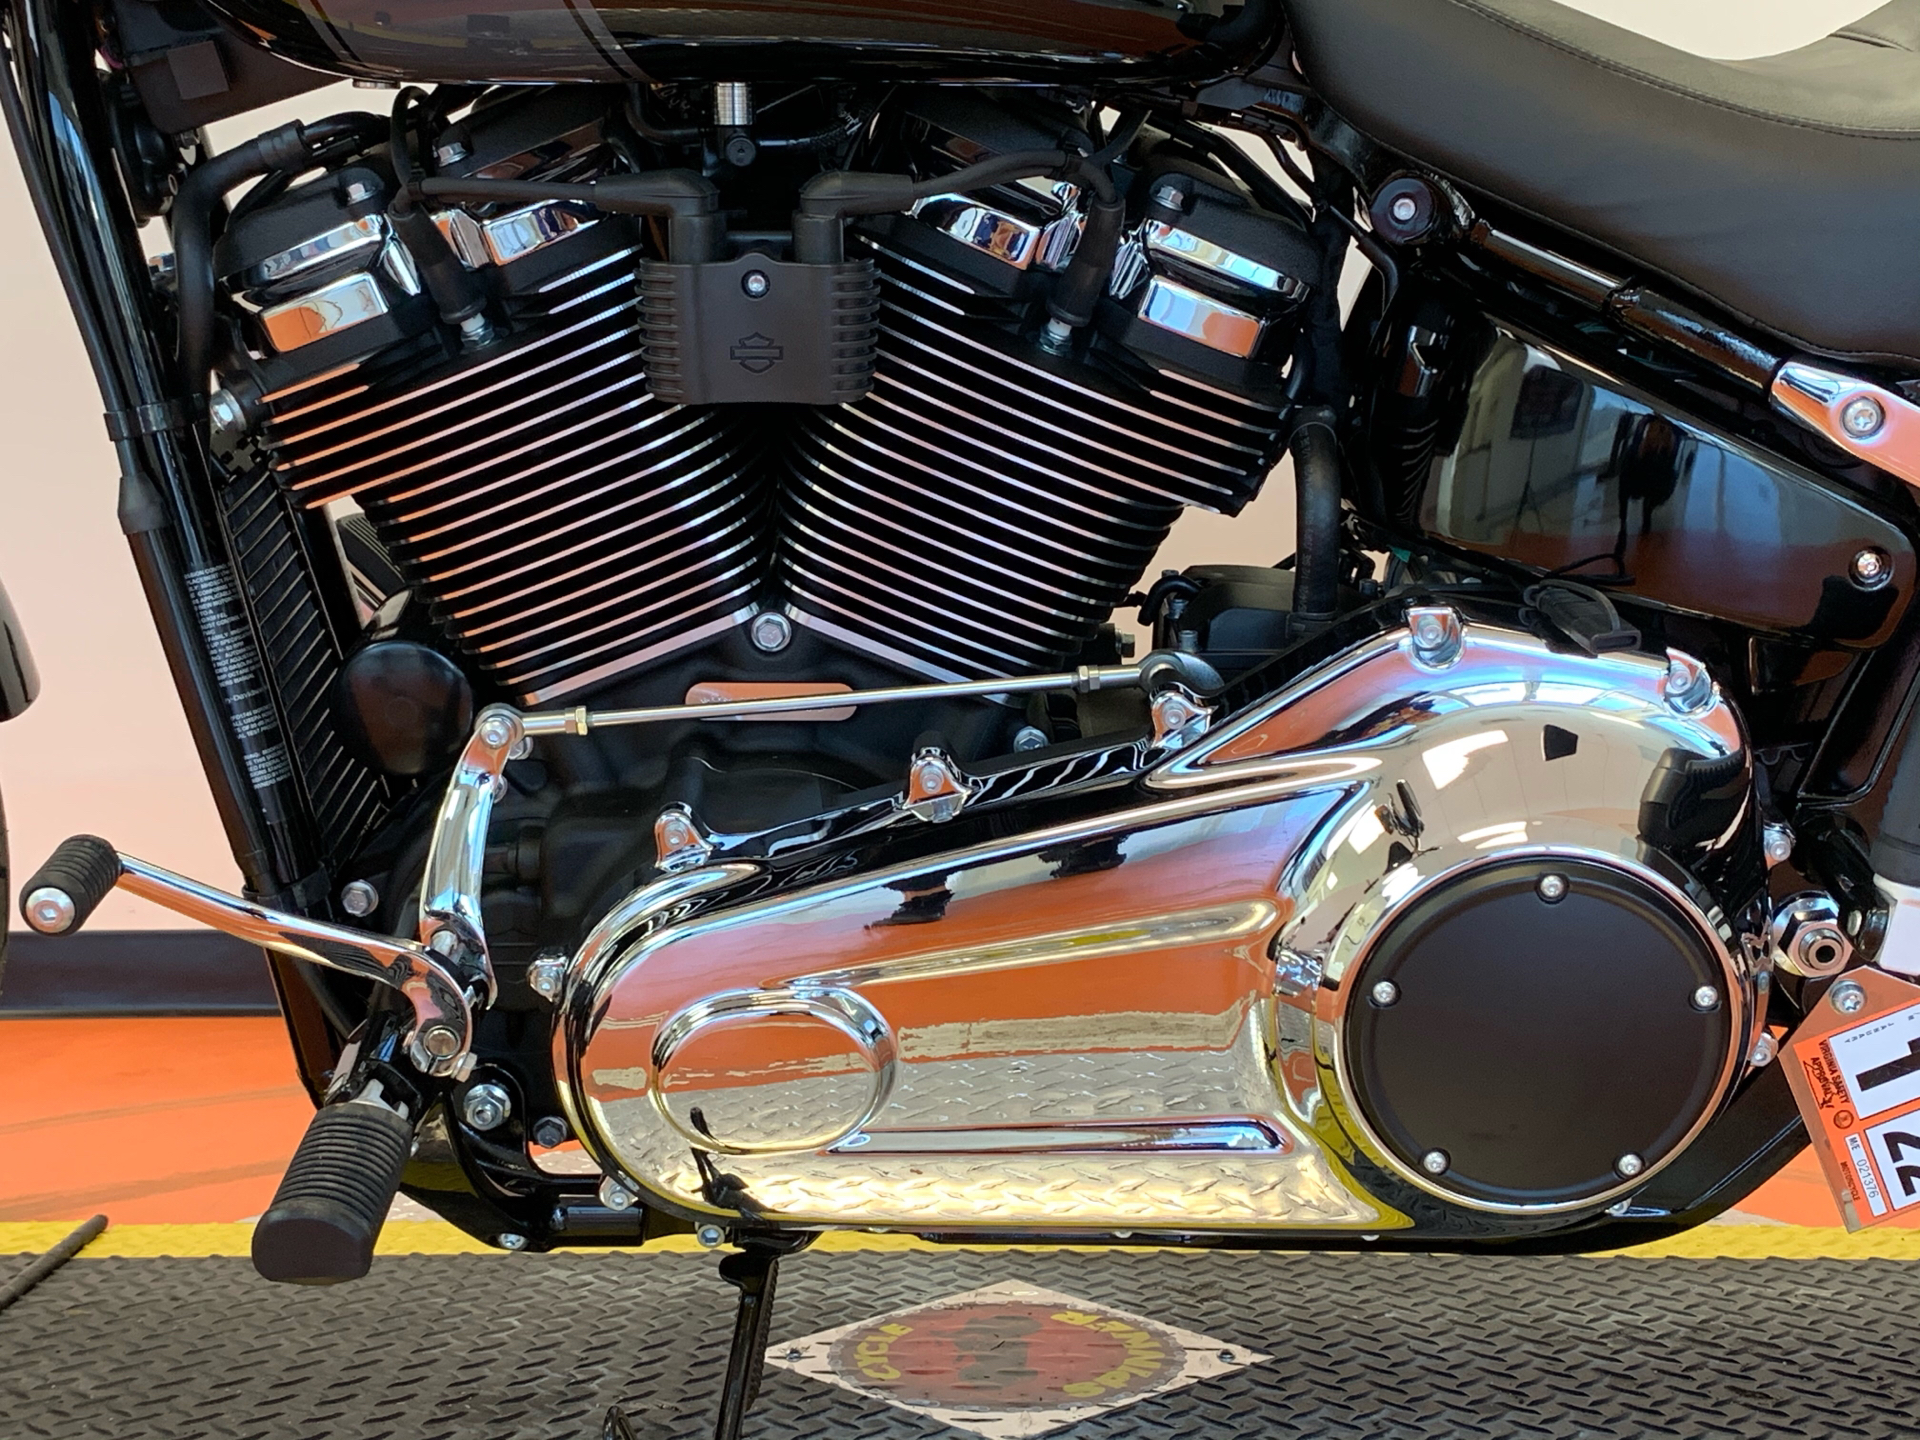 2021 Harley-Davidson Sport Glide in Dumfries, Virginia - Photo 13